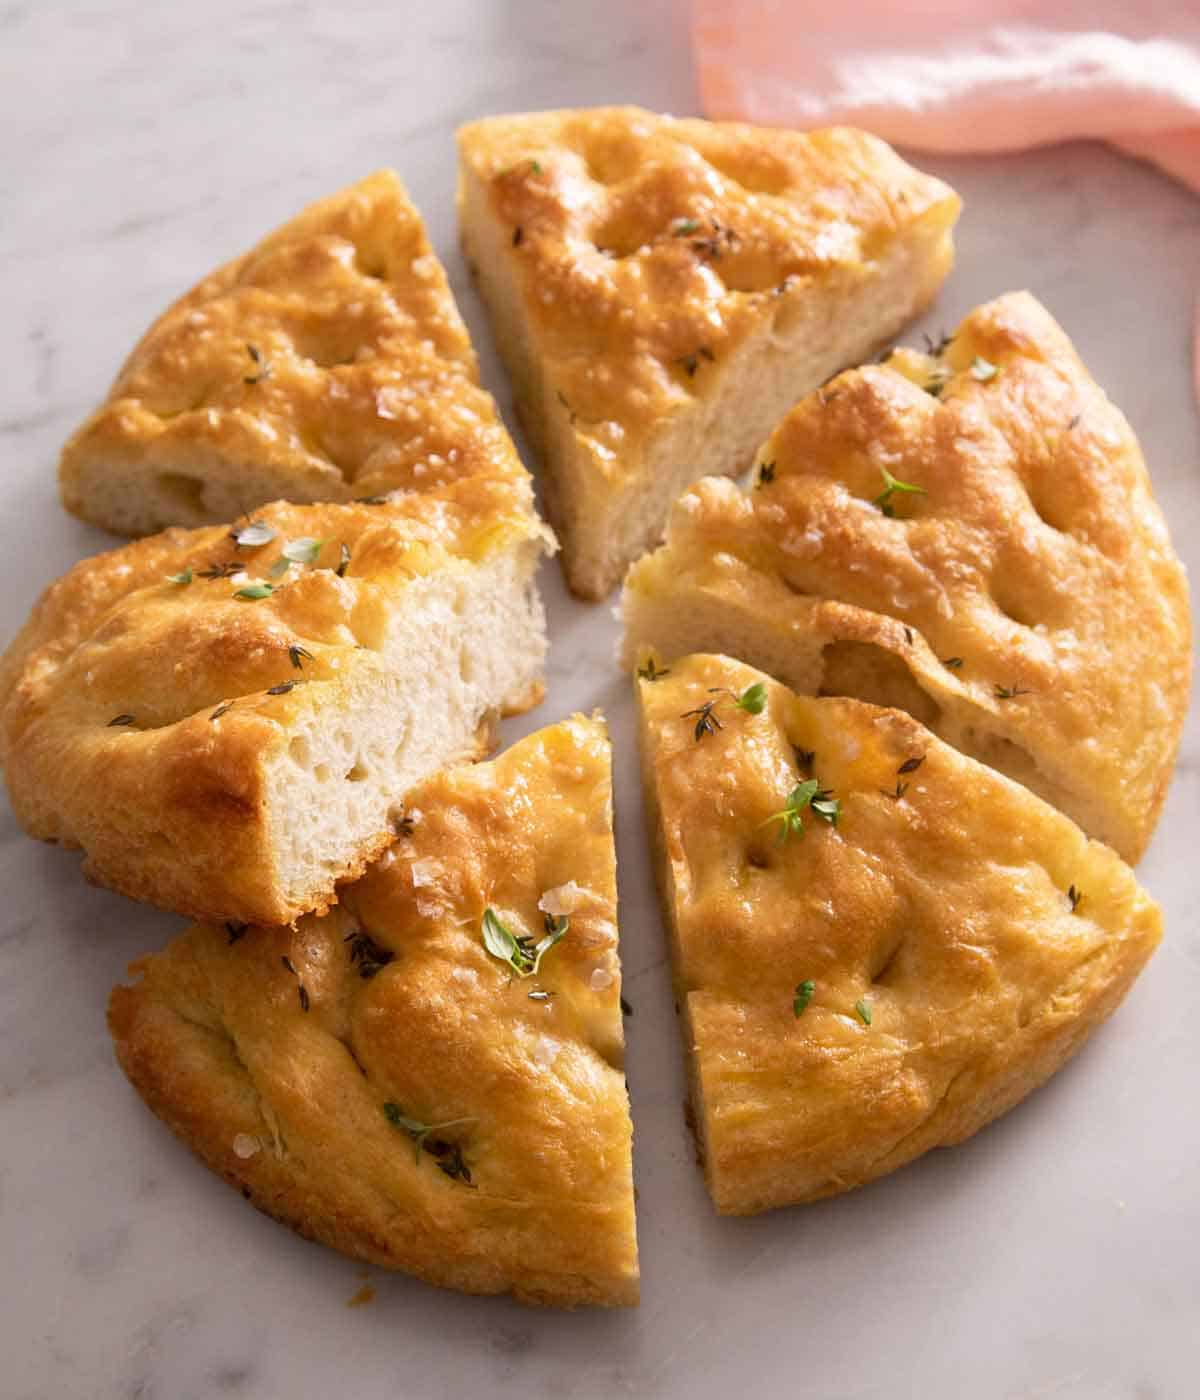 A round focaccia cut into 6 wedges on a marble surface.